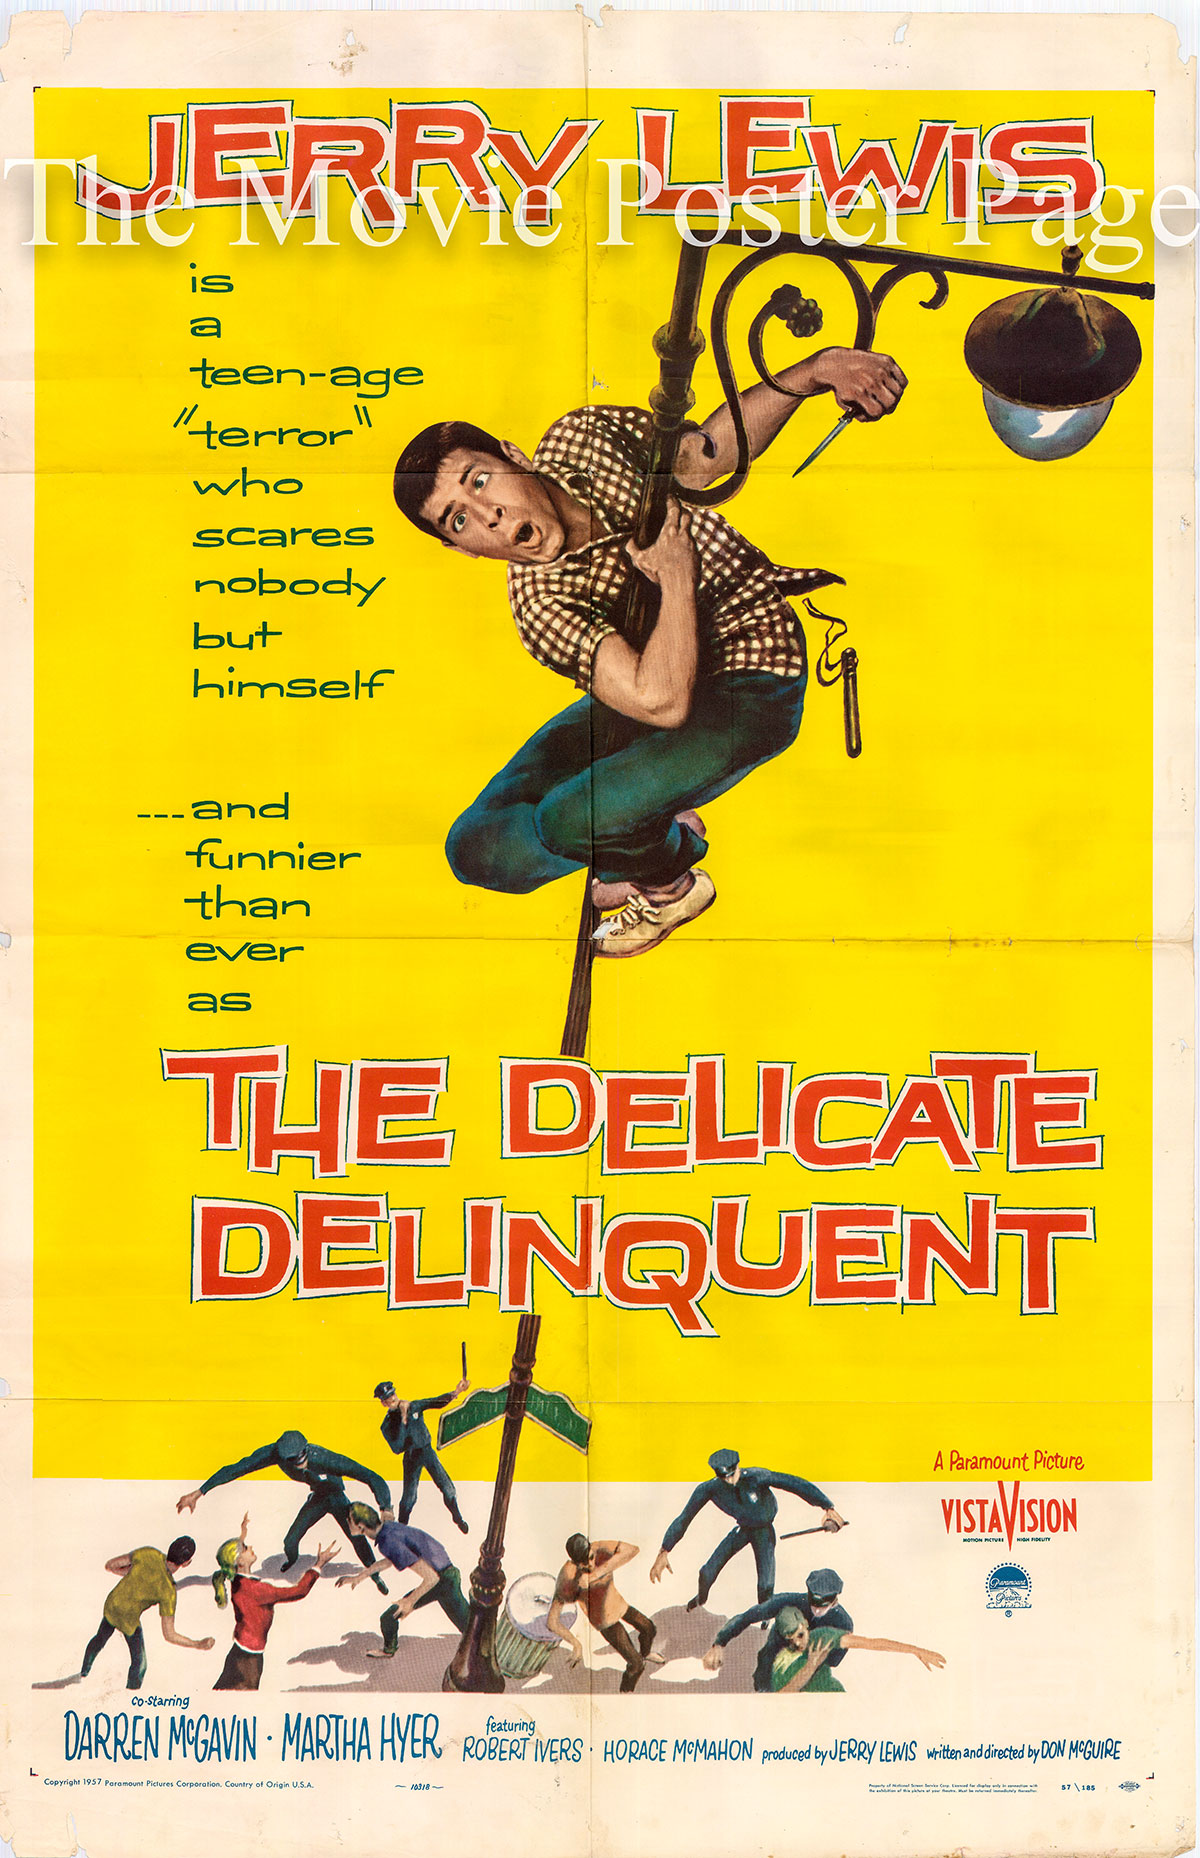 Pictured is a US one-sheet poster for the 1957 Don McGuire film The Delicate Delinquent starring Jerry Lewis.